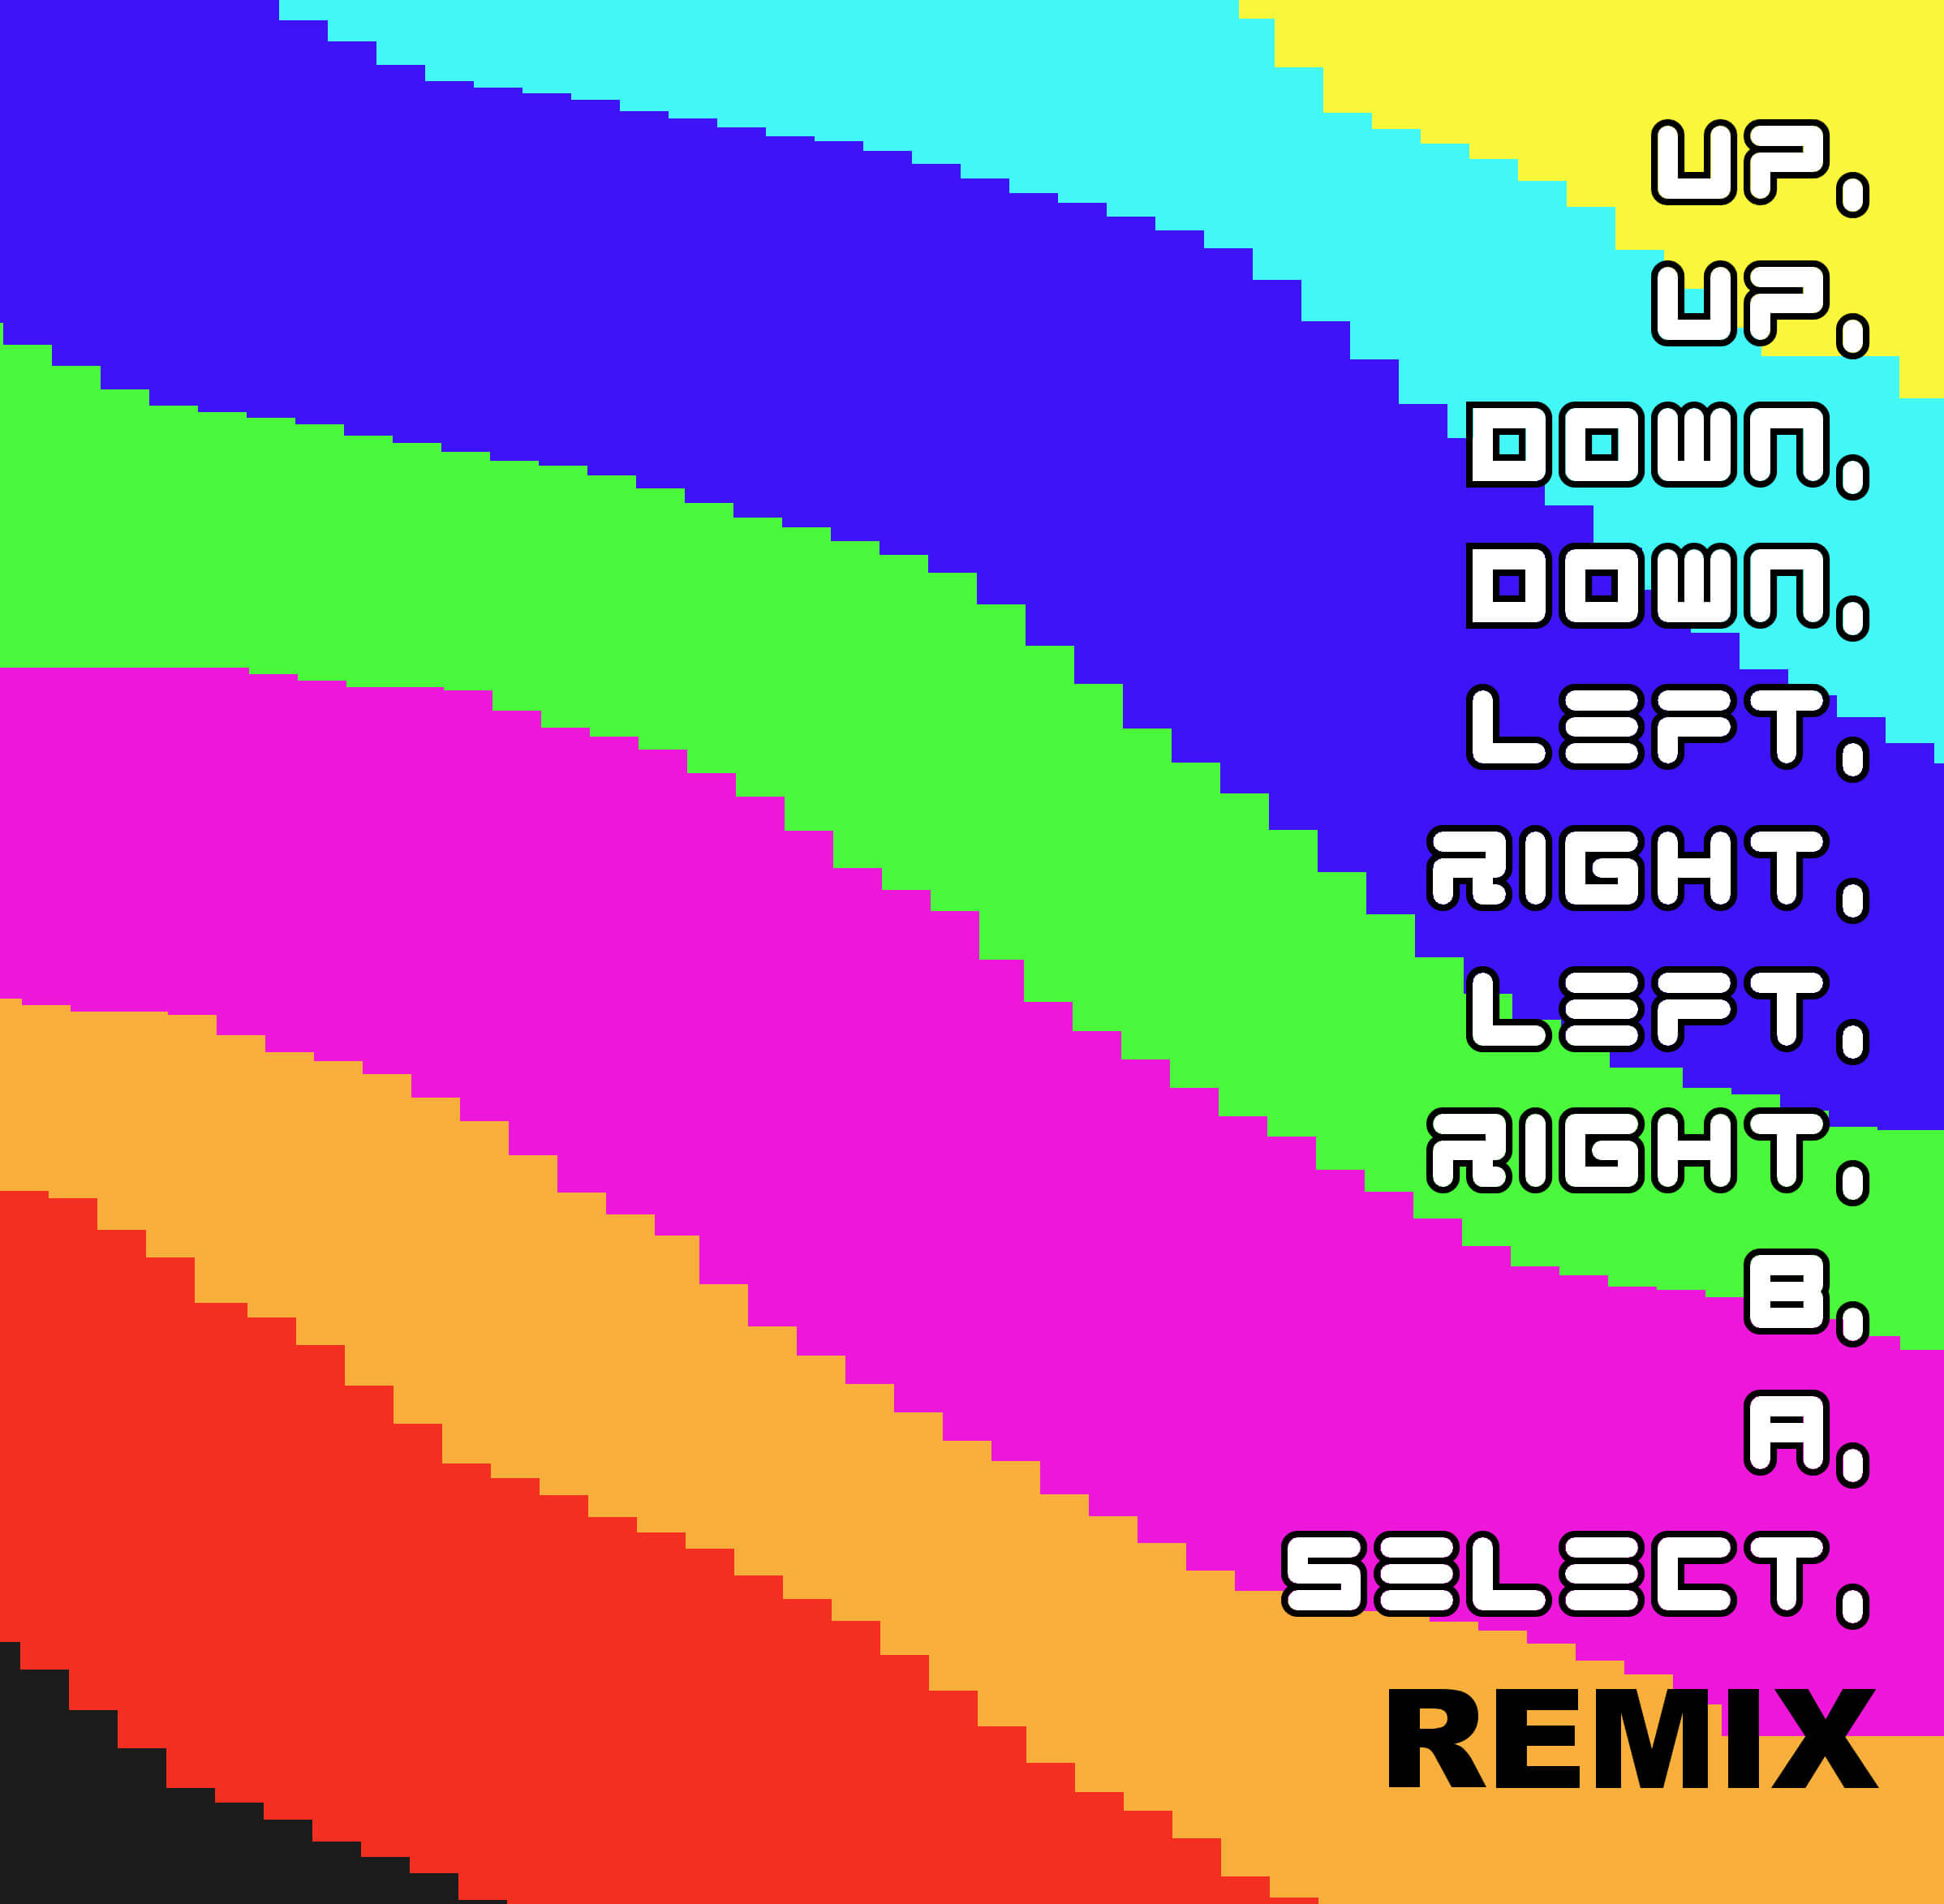 hidden-fortres-up-down-left-right-b-a-select-remix-chiptune-album